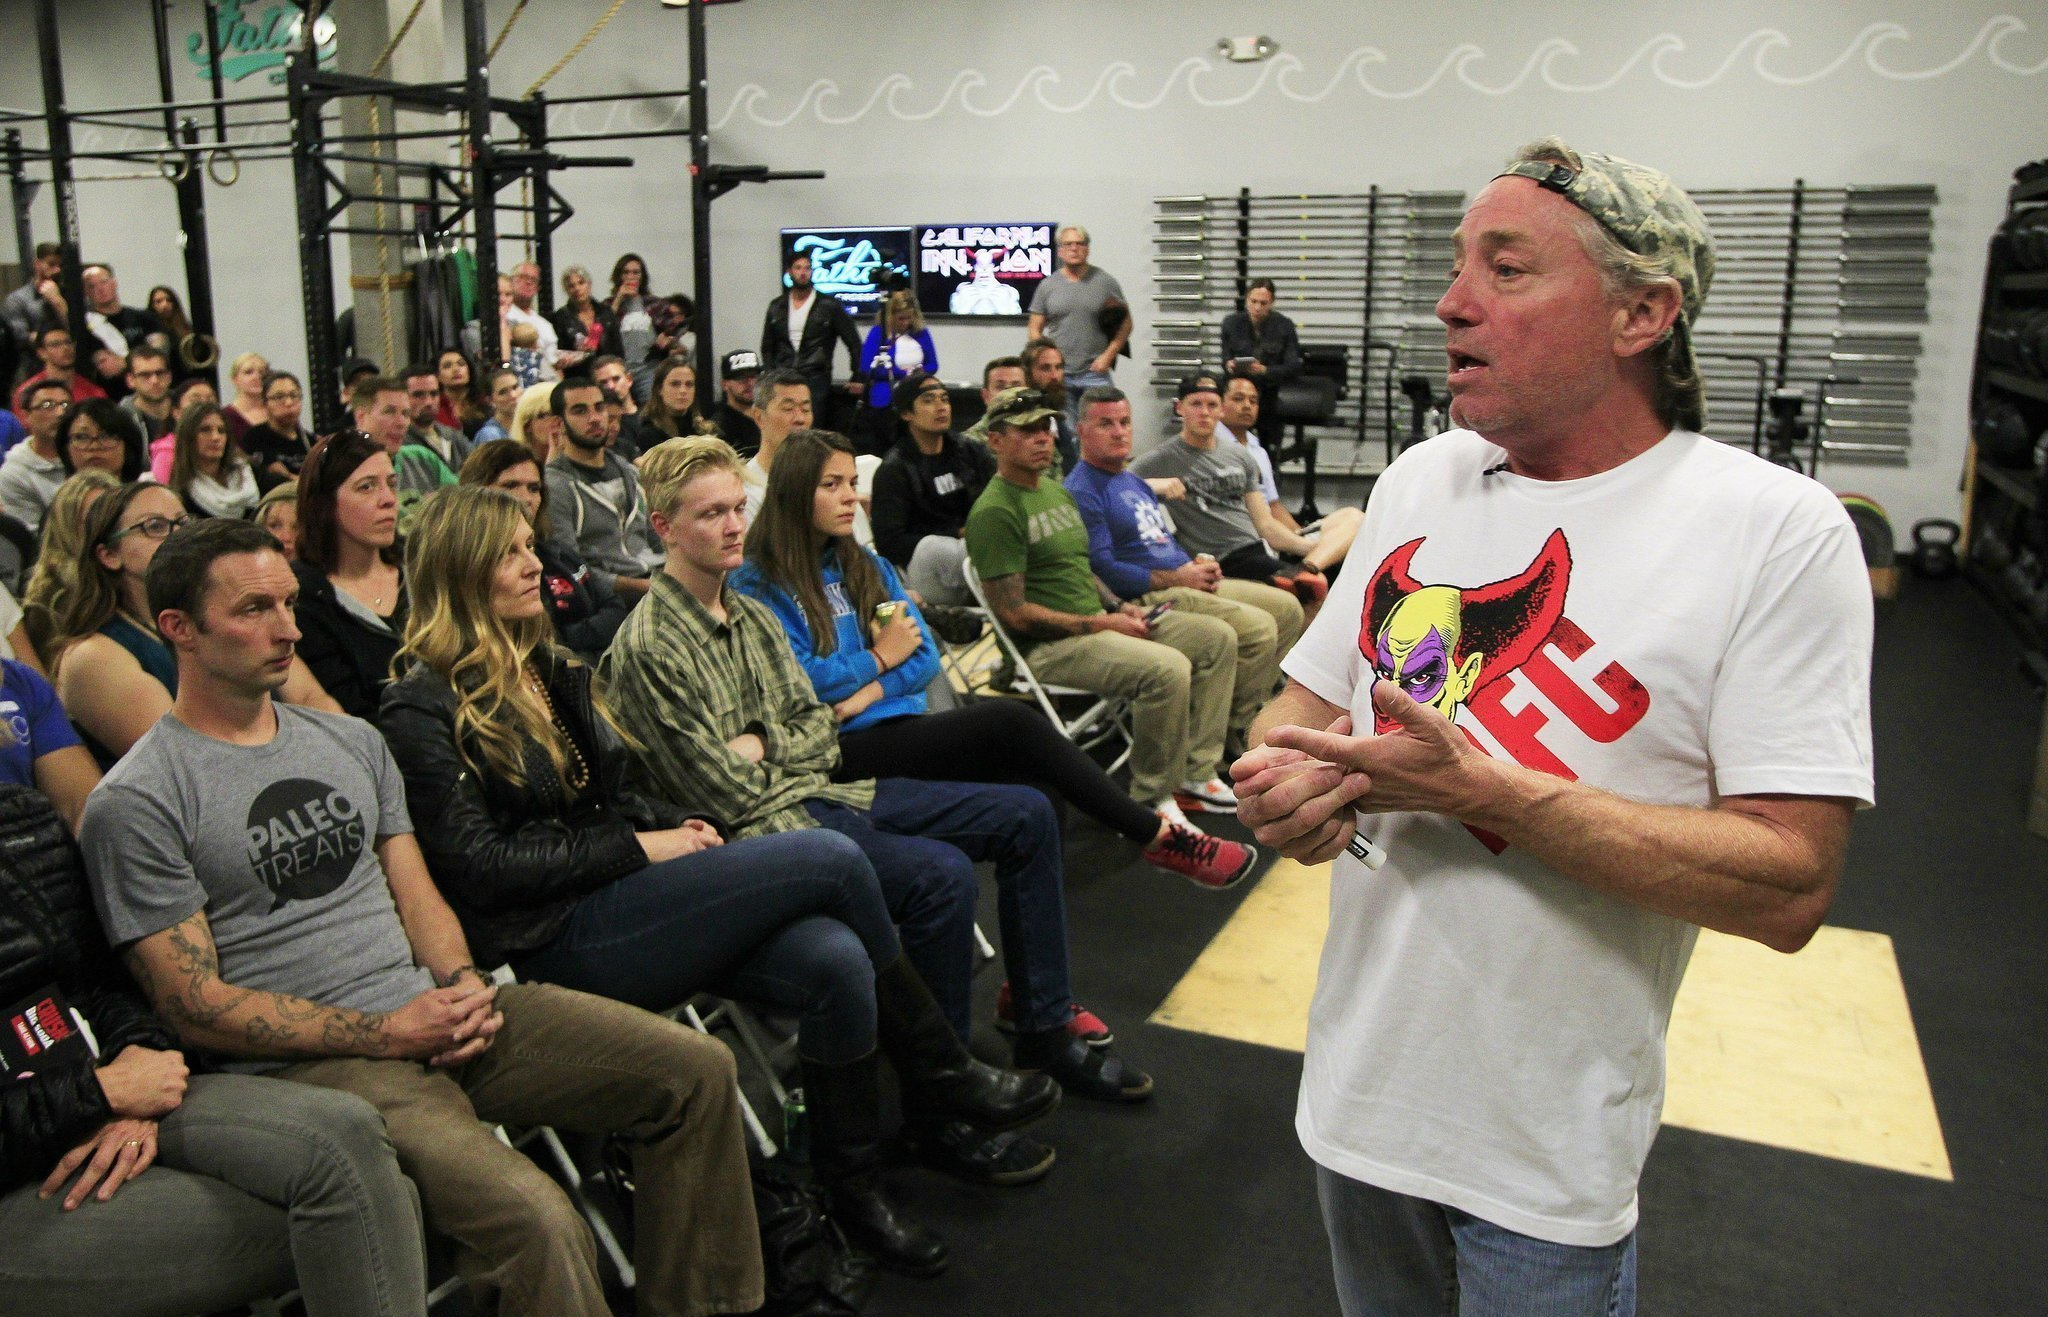 Crossfit guru greg glassman visits san diego during anti